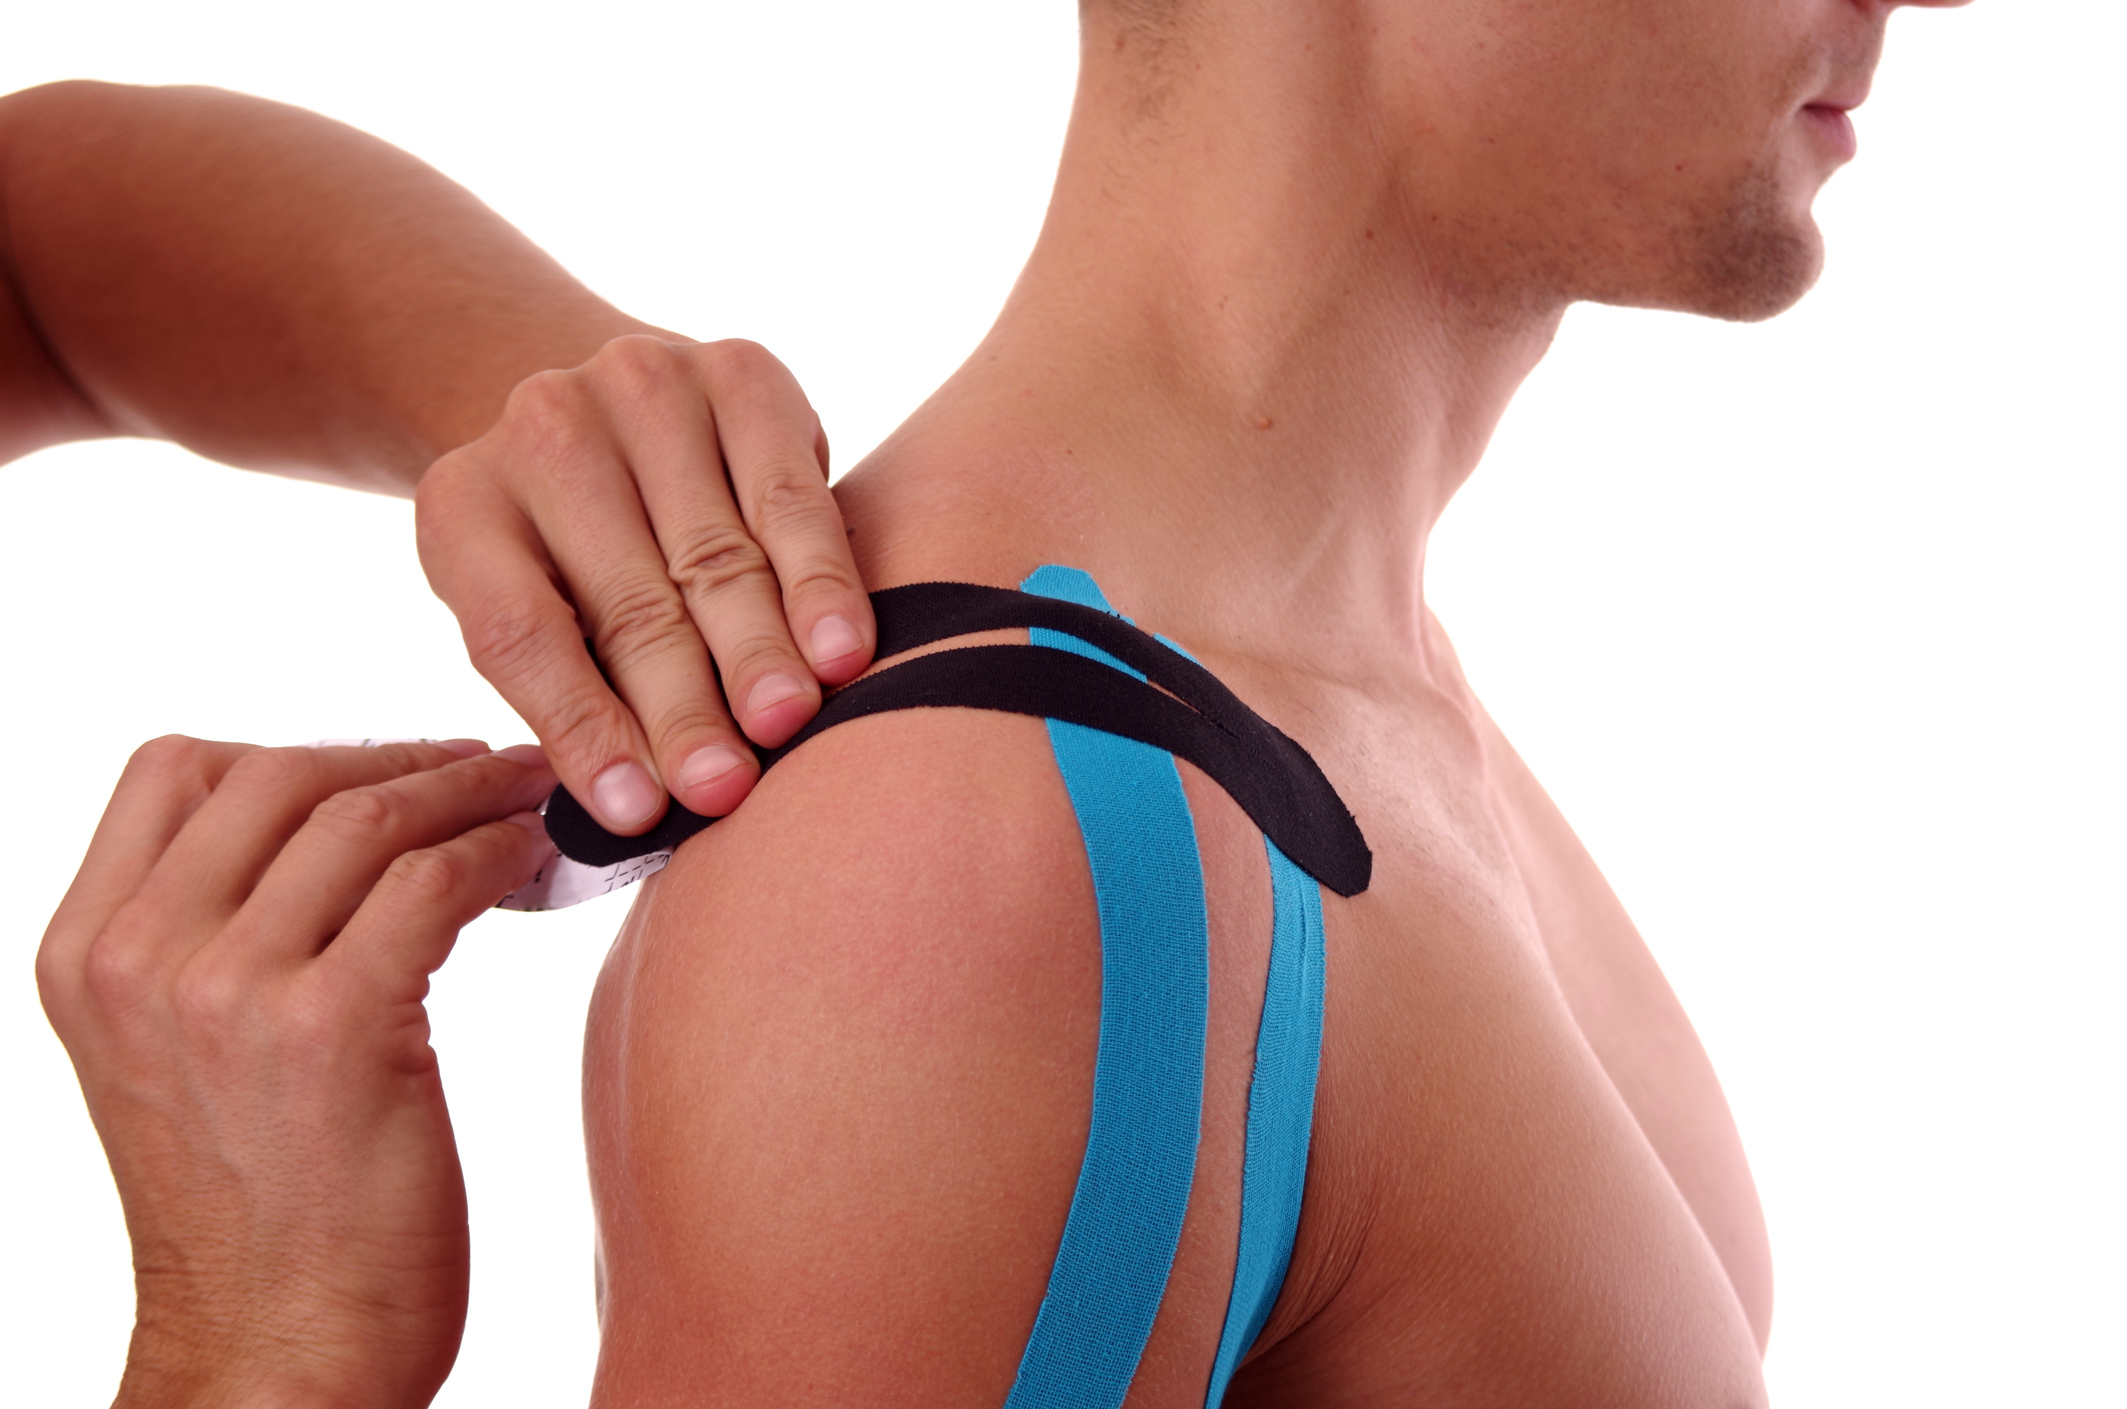 KINESIO TAPING - Rehabilitative Taping Technique Designed To Facilitate The Body's Natural Healing Process, While Providing Support And Stability To Muscles And Joints Without Restricting Range Of Motion.